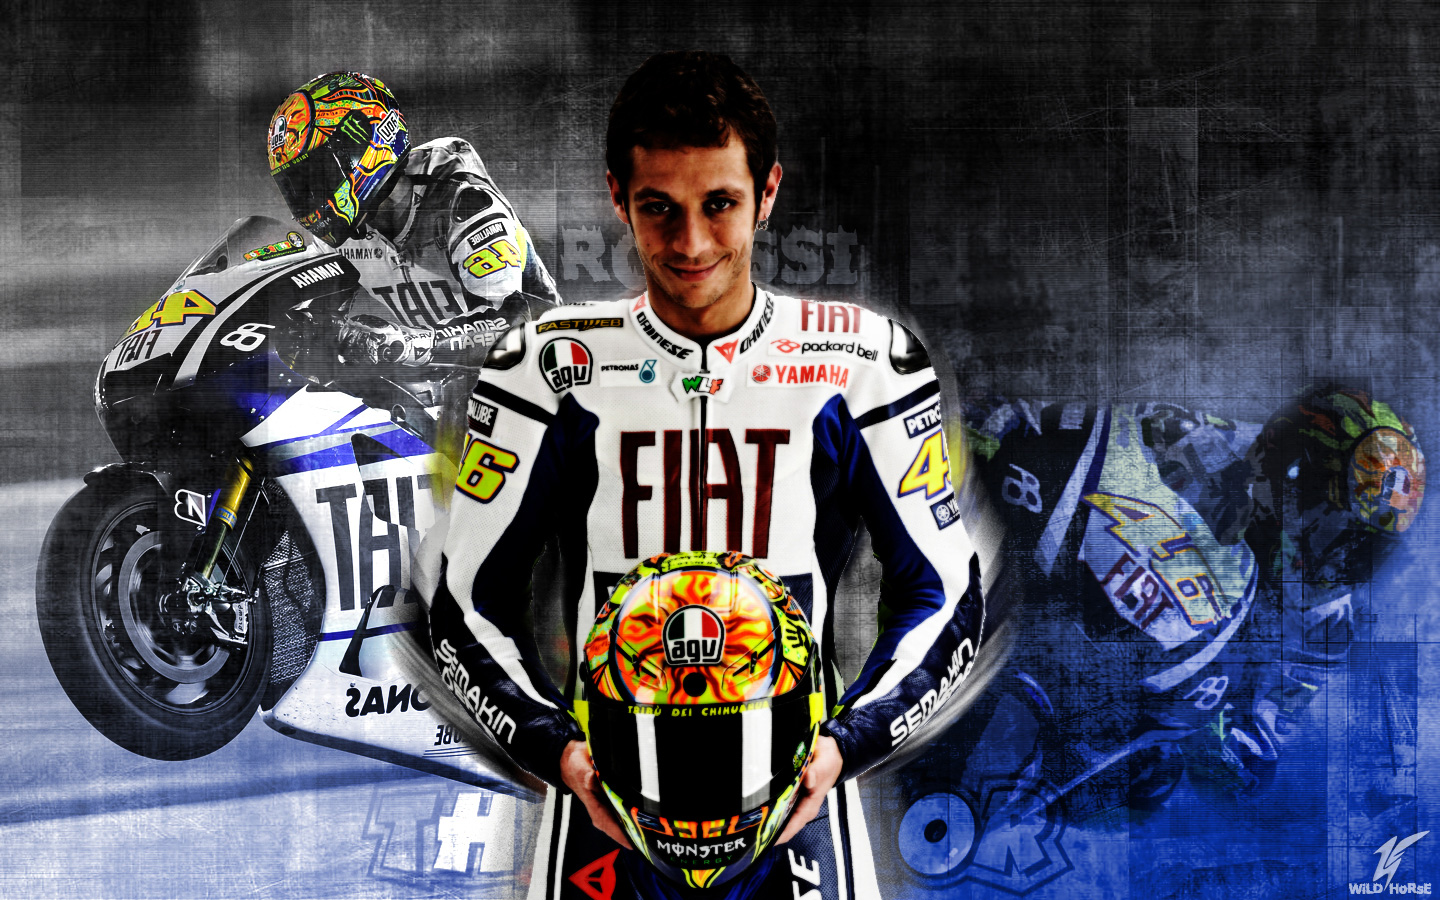 1440x900 - Valentino Rossi Wallpapers 4